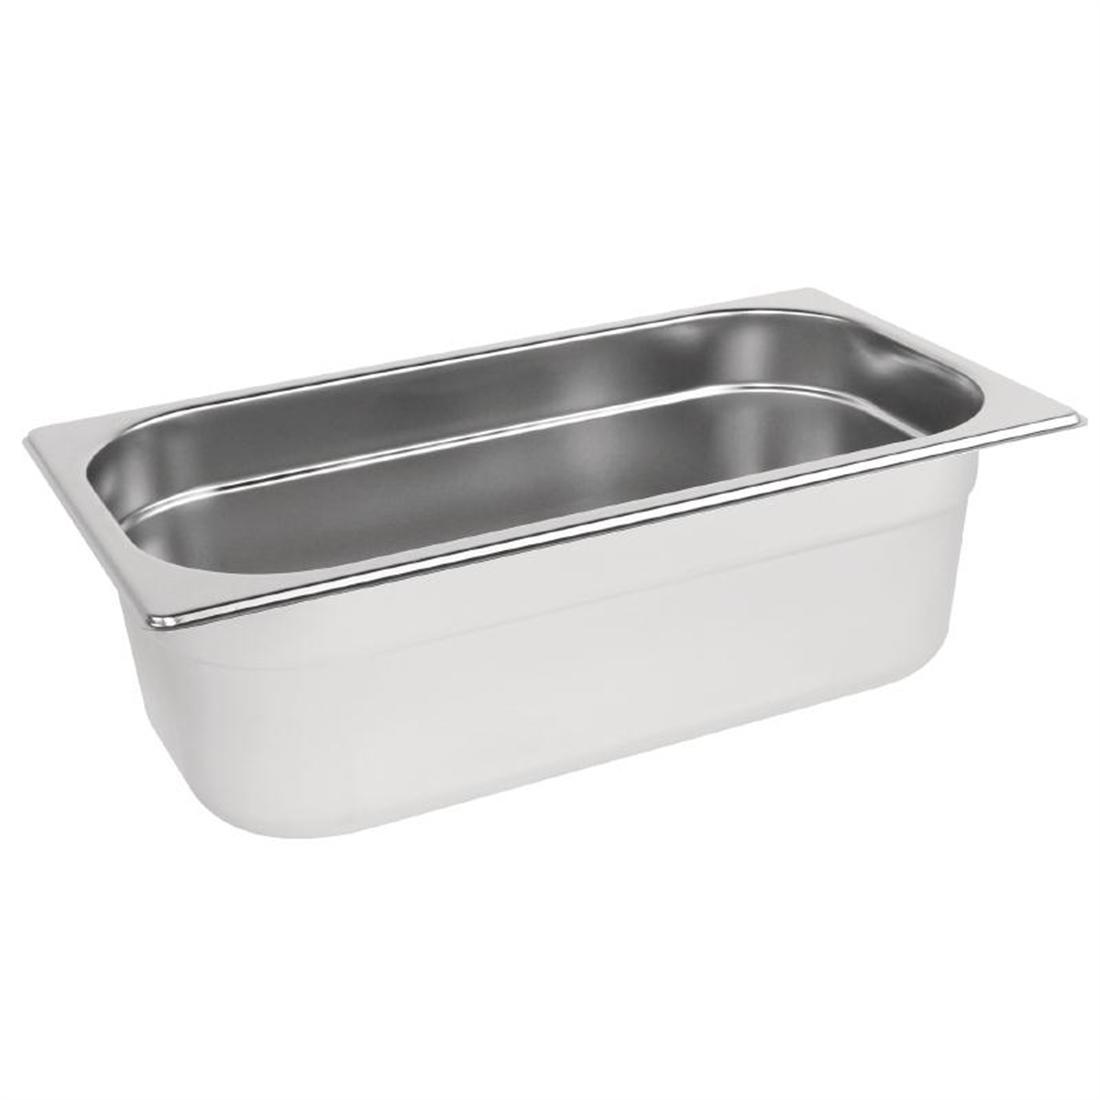 Vogue Stainless Steel 1/3 Gastronorm Pan 100mm - K933